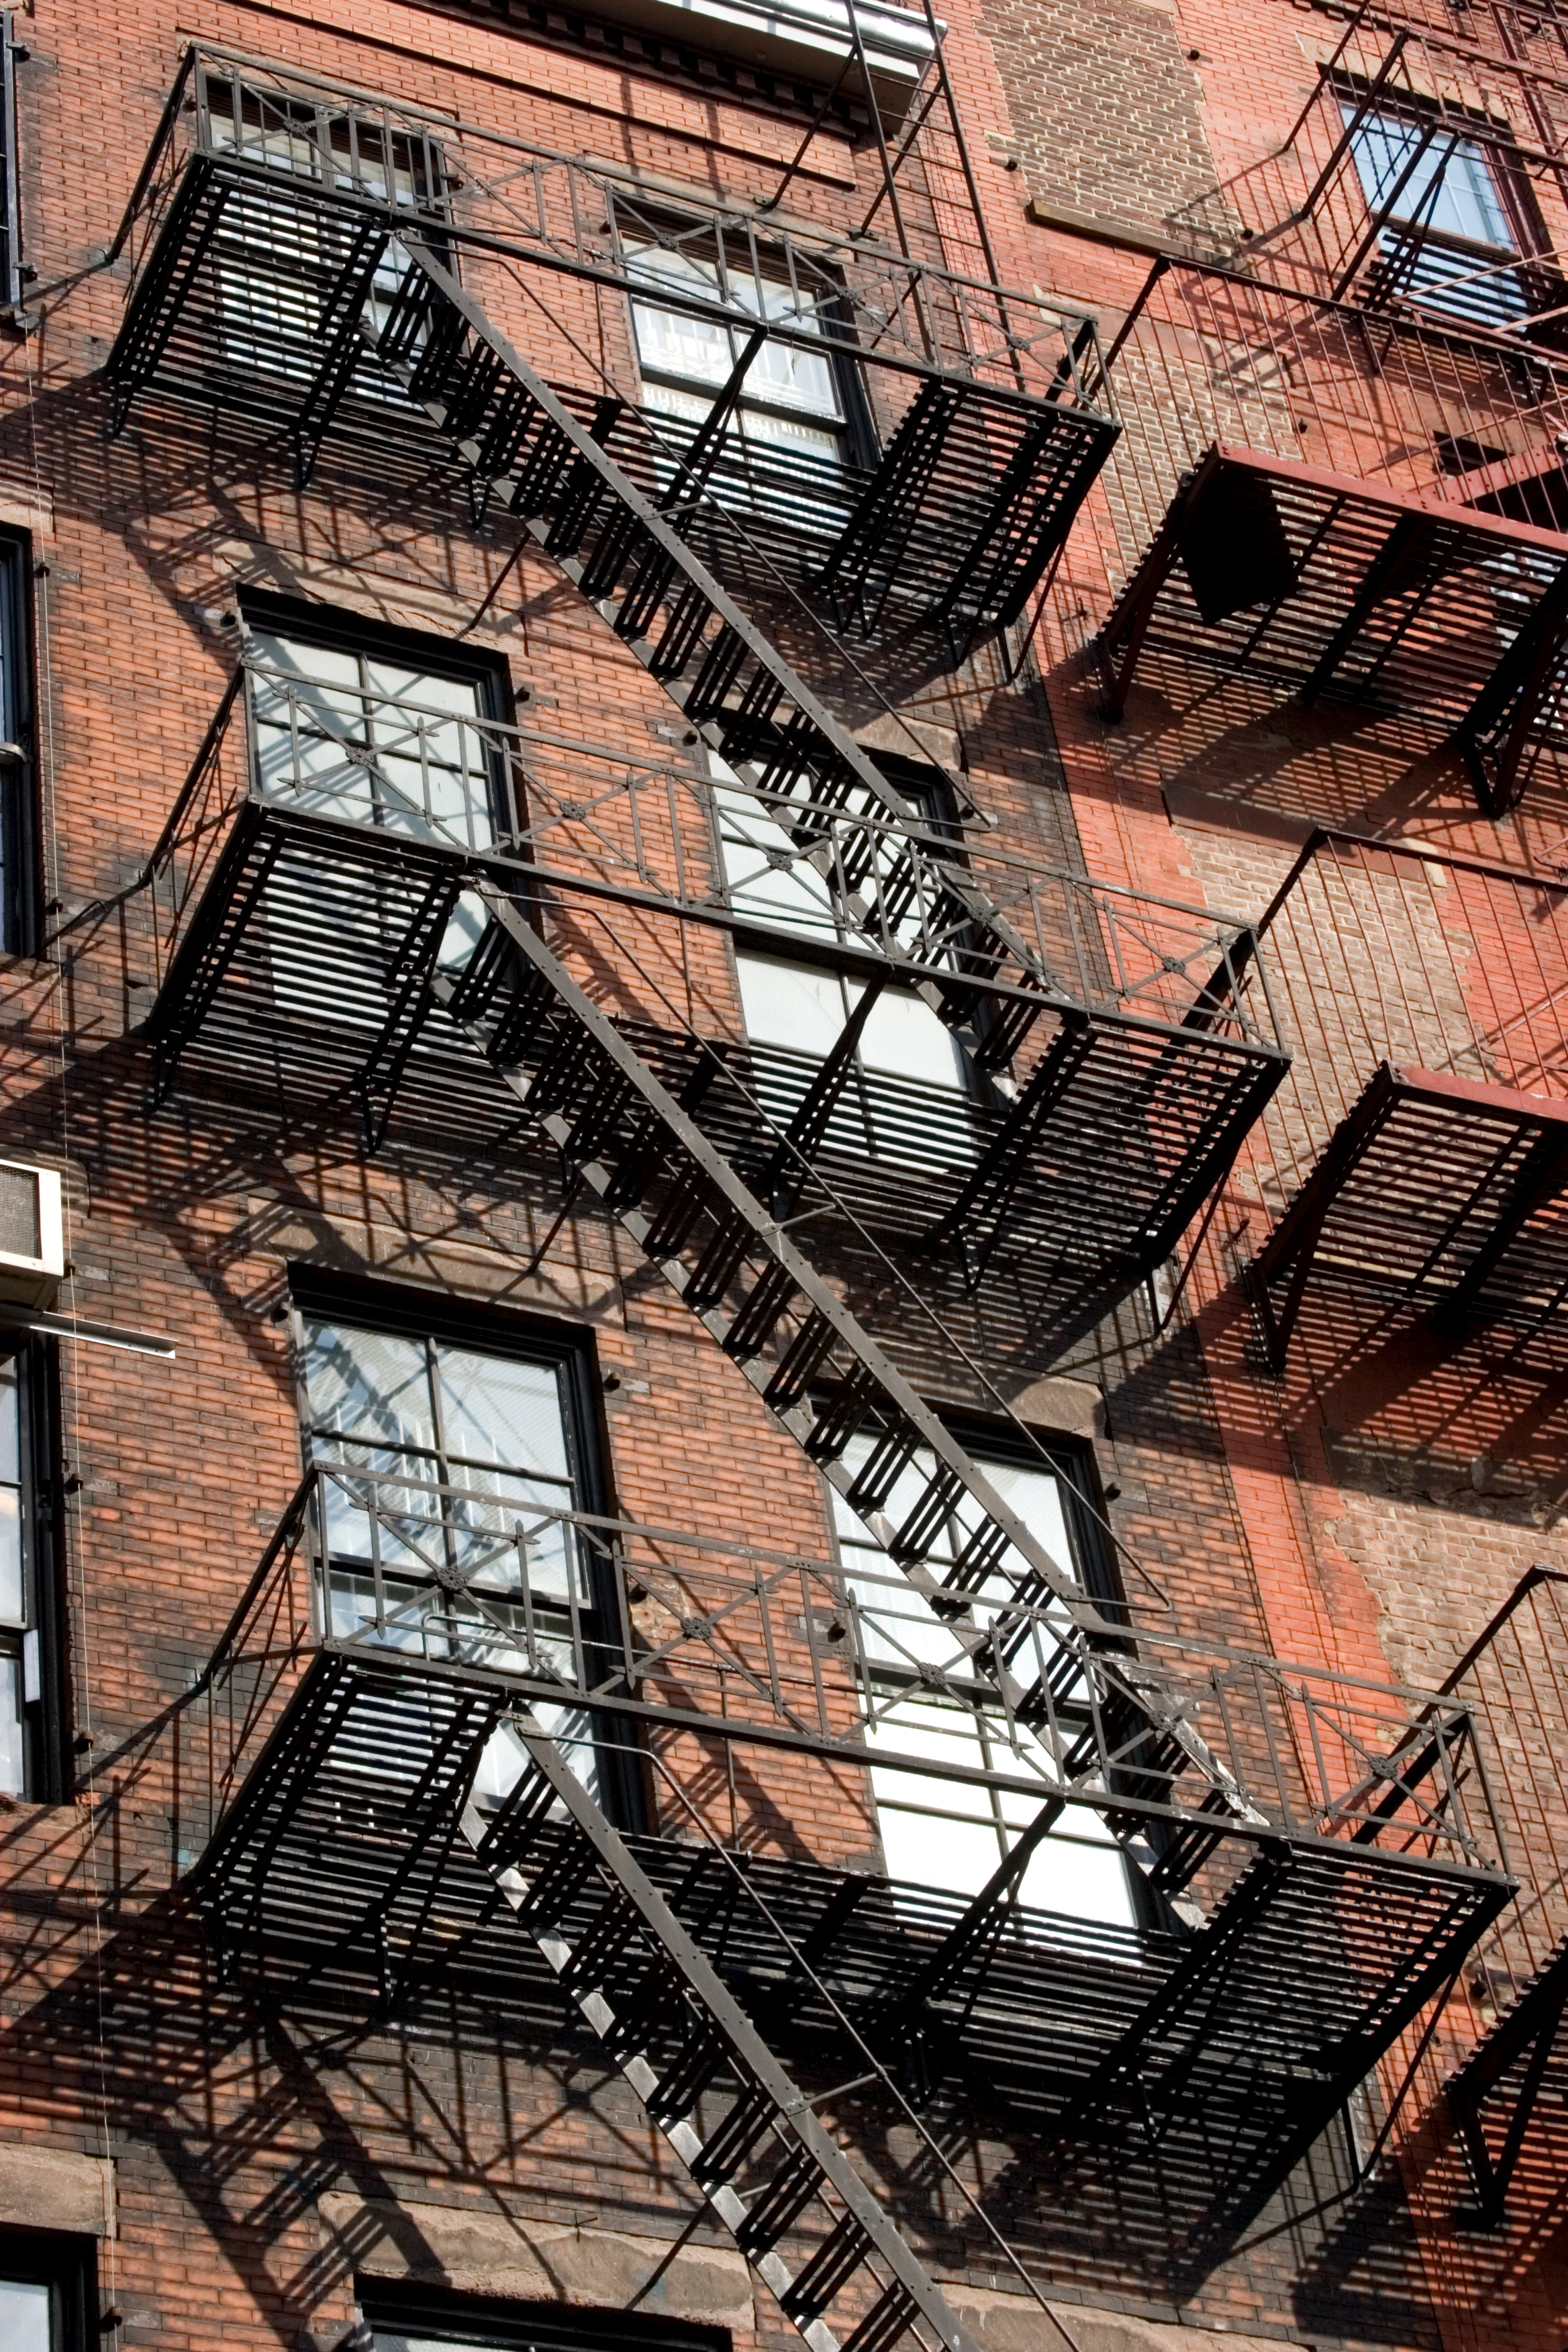 Apartment Building Fire Escape Ladder file:nyc - buildings with fire exit ladders - 0200 - wikimedia